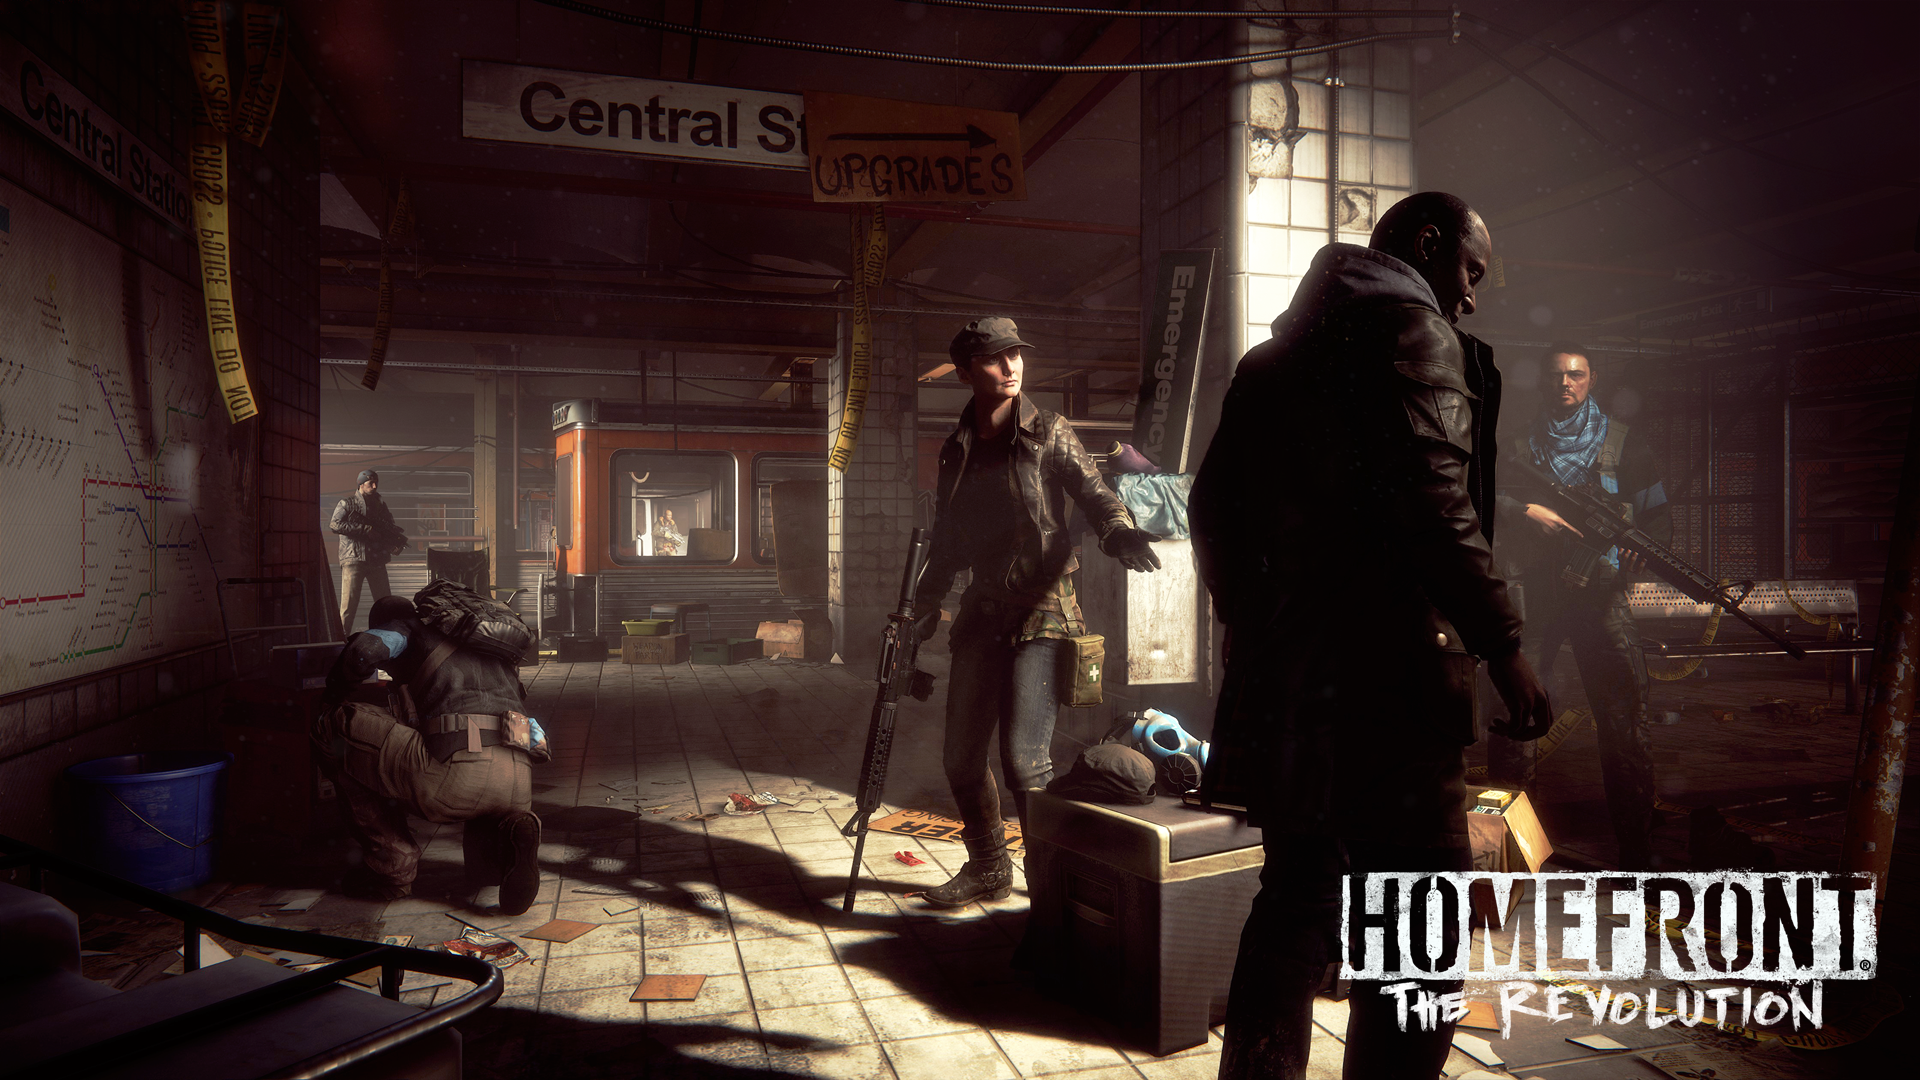 First 60 Minutes - Homefront Video Game, Transparent background PNG HD thumbnail